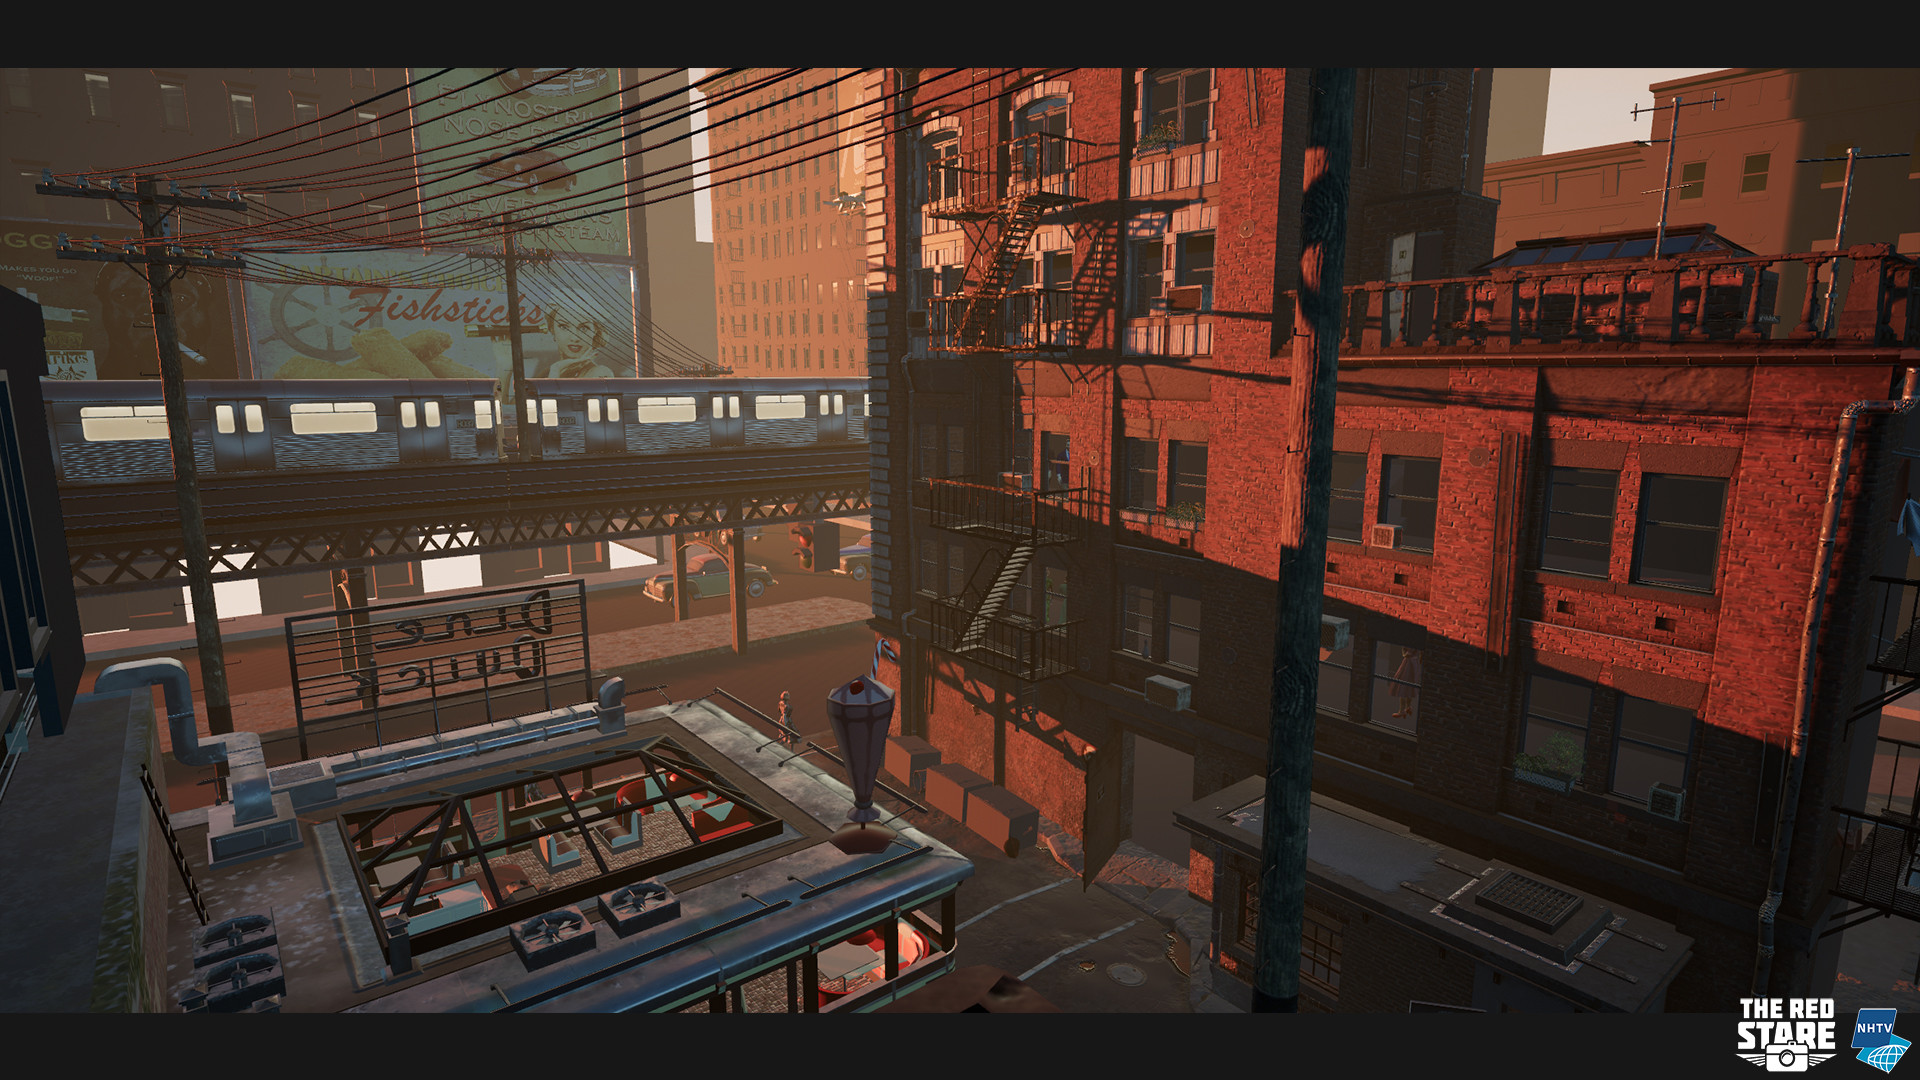 Newest ingame render. We are using a dynamic day and night cycle now. It greatly improved the lighting of the scene.